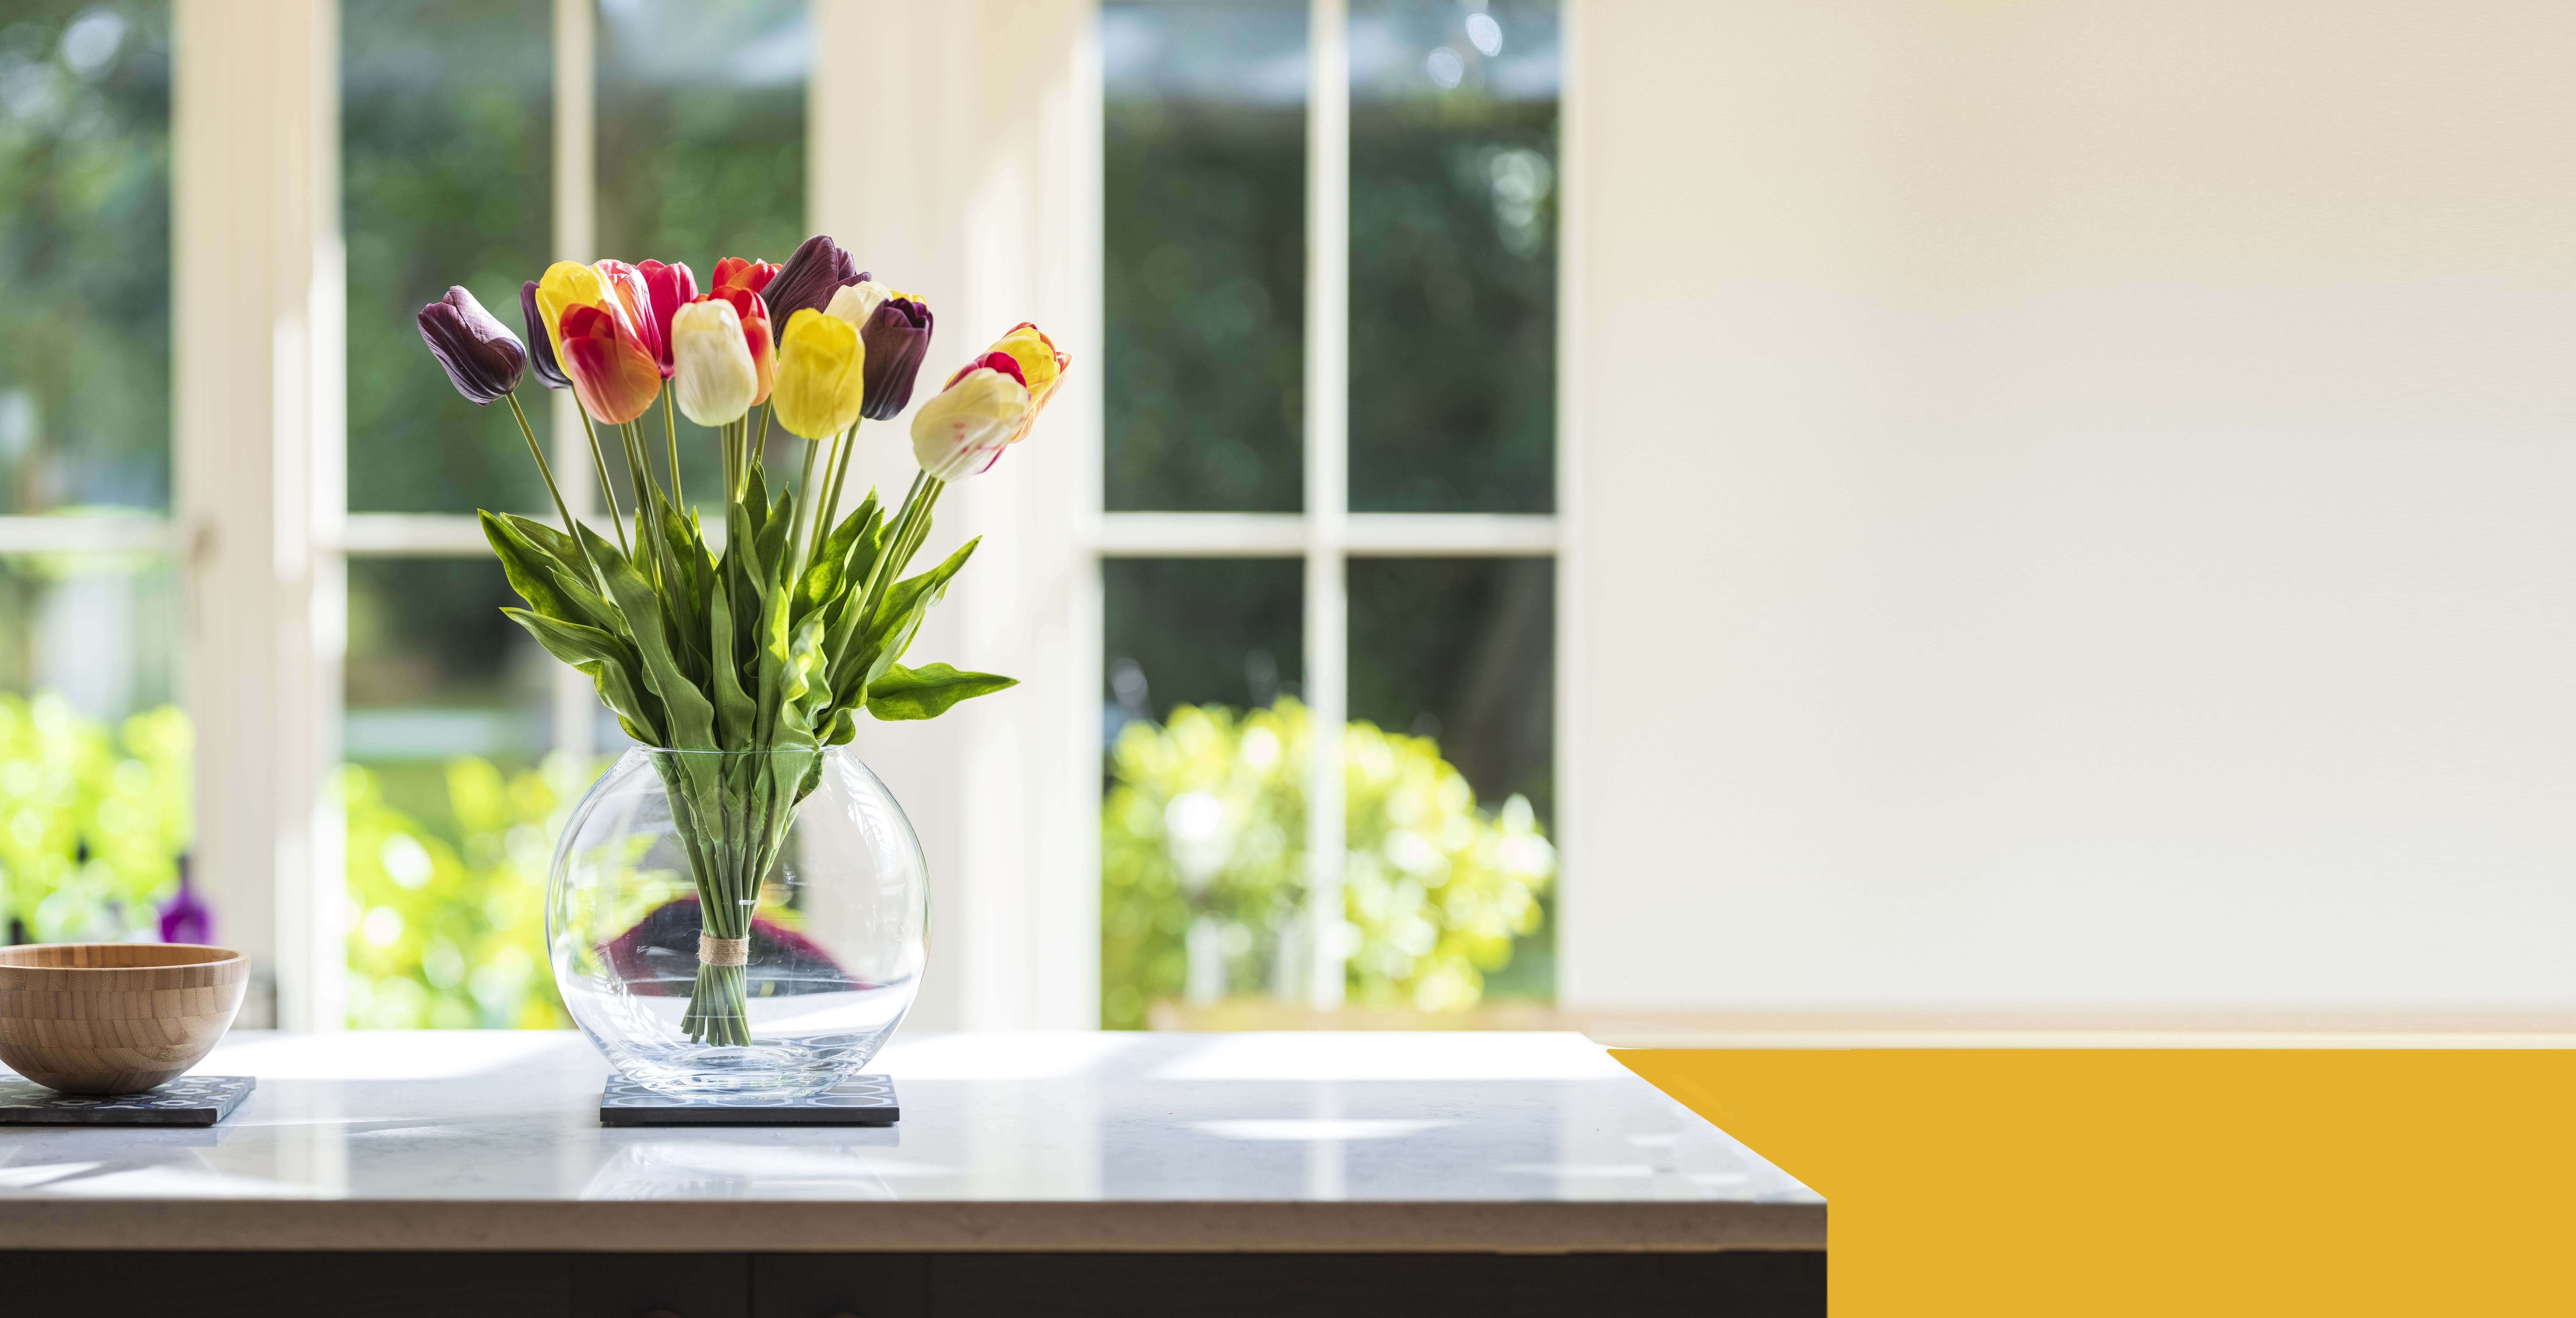 Bunch of artificial tulips on kitchen counter